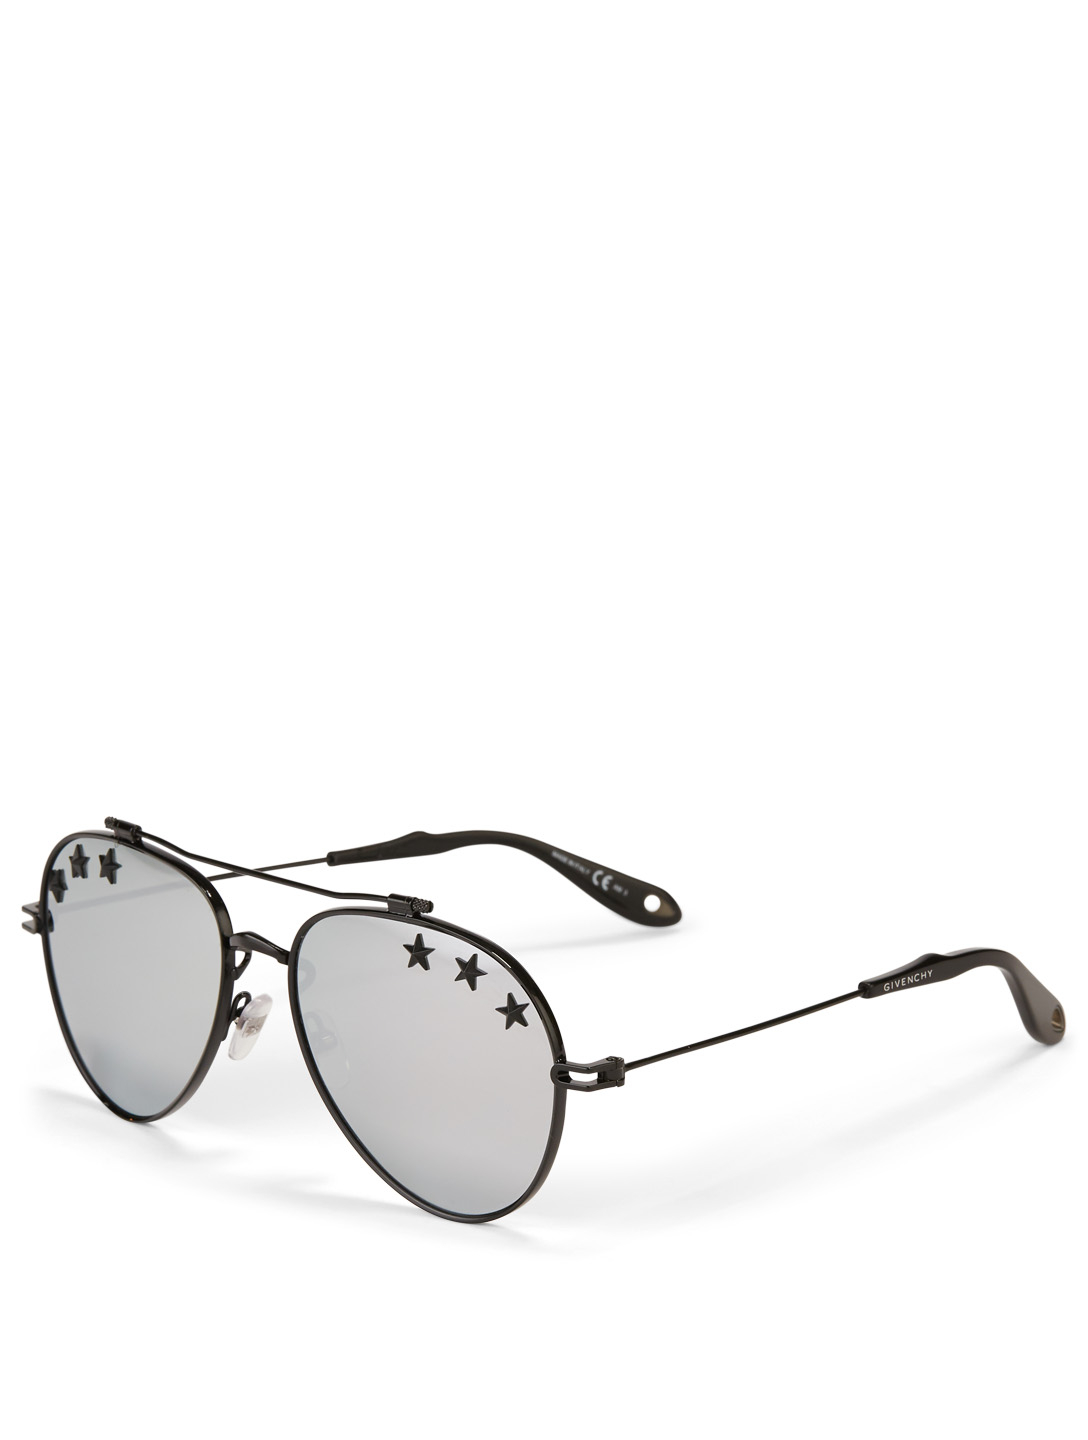 GIVENCHY Star Aviator Sunglasses Men's Silver